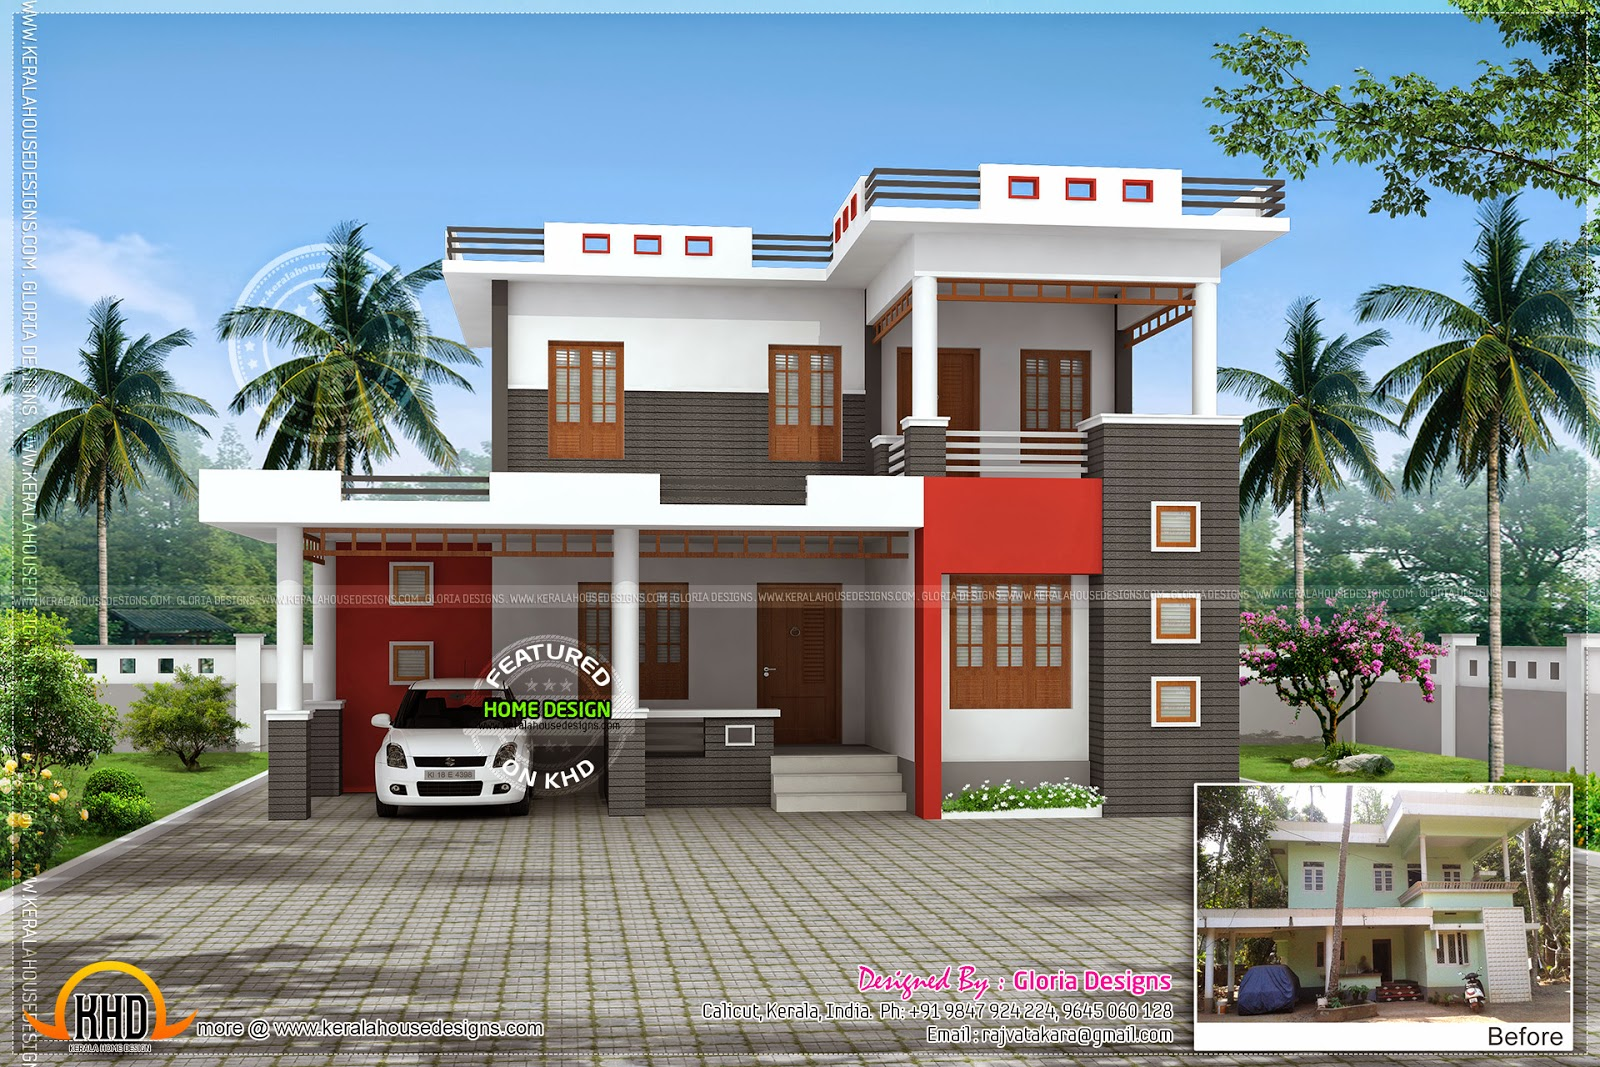 Renovation 3d model for an old house kerala home design for Kerala model house photos with details